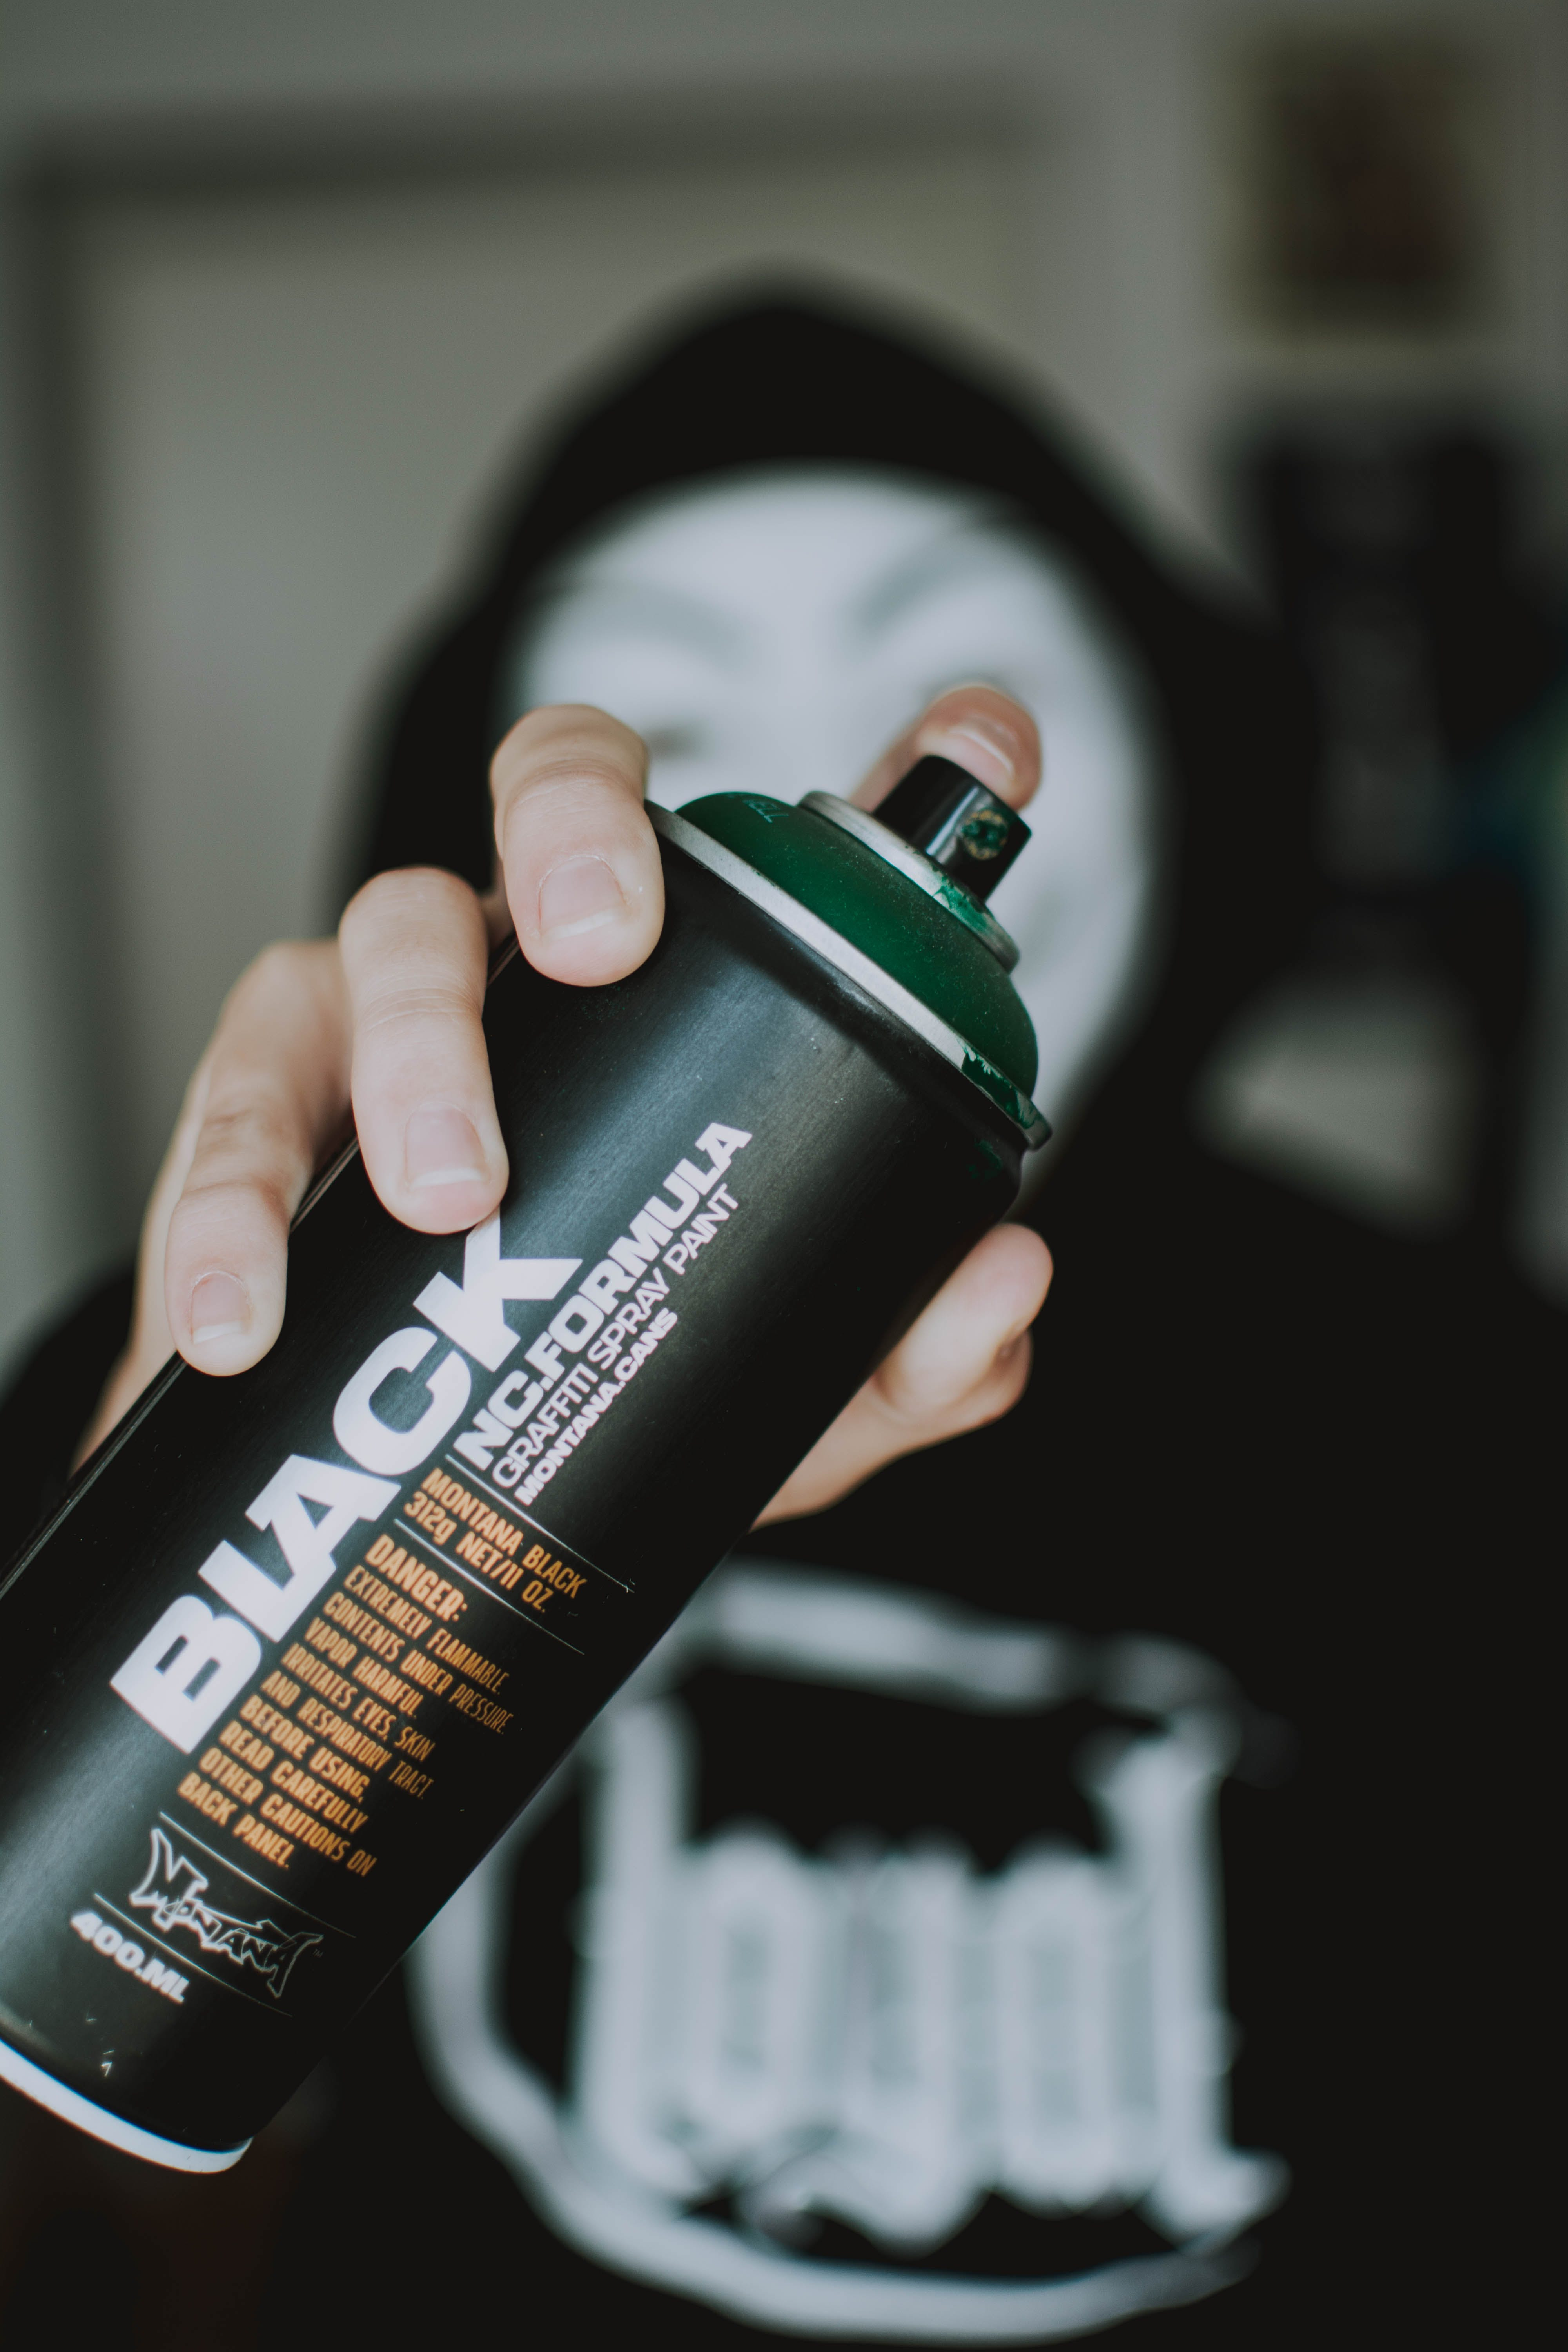 Person Holding Black Spray Bottle